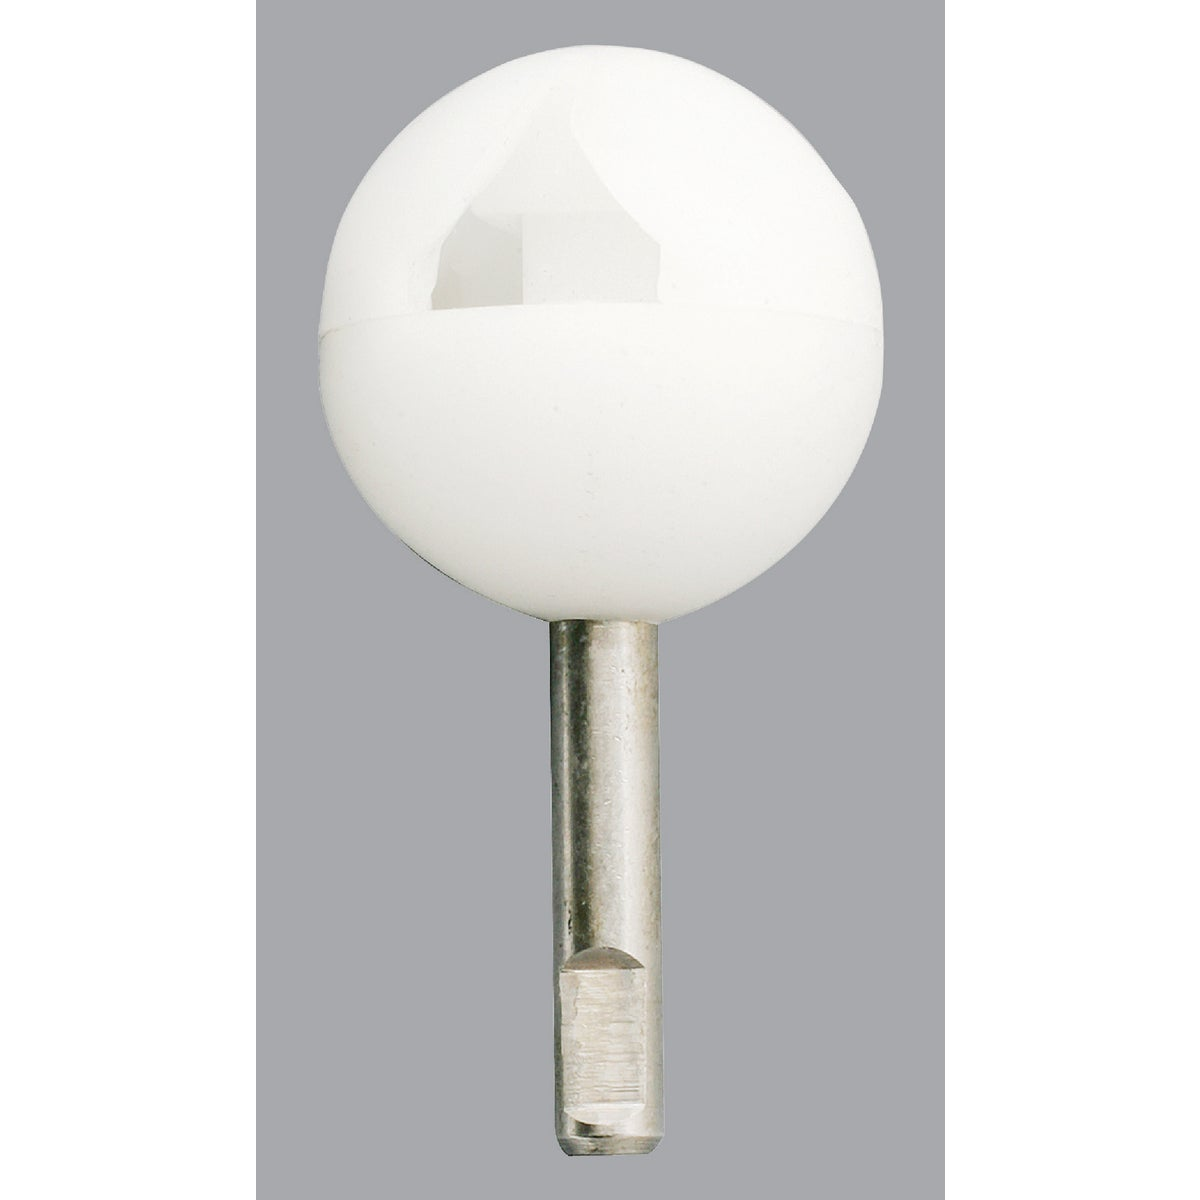 LEVER STYLE FAUCET BALL - 405353 by Plumb Pak/keeney Mfg